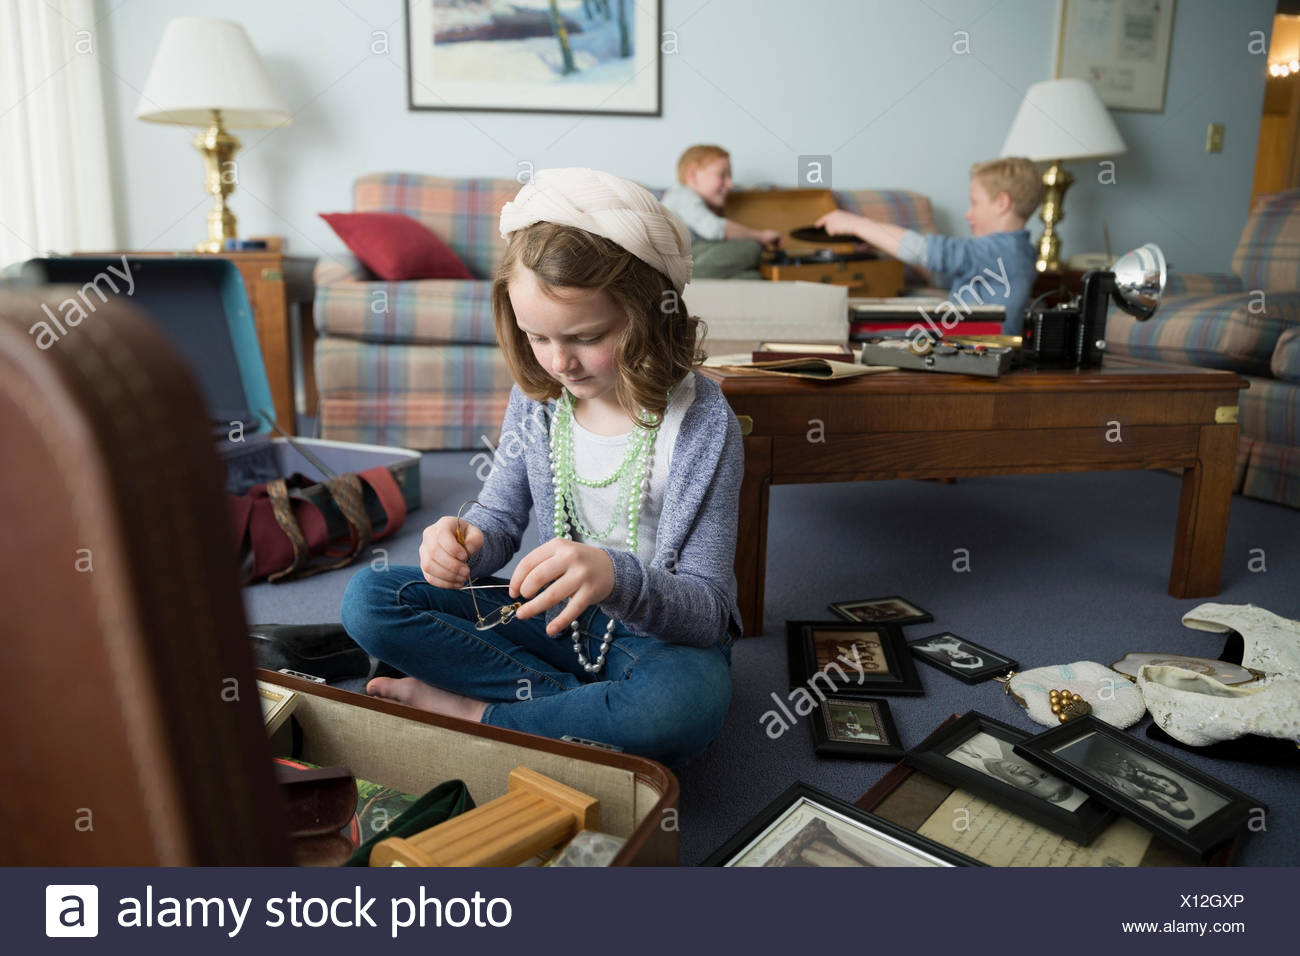 Curious girl going through memorabilia - Stock Image